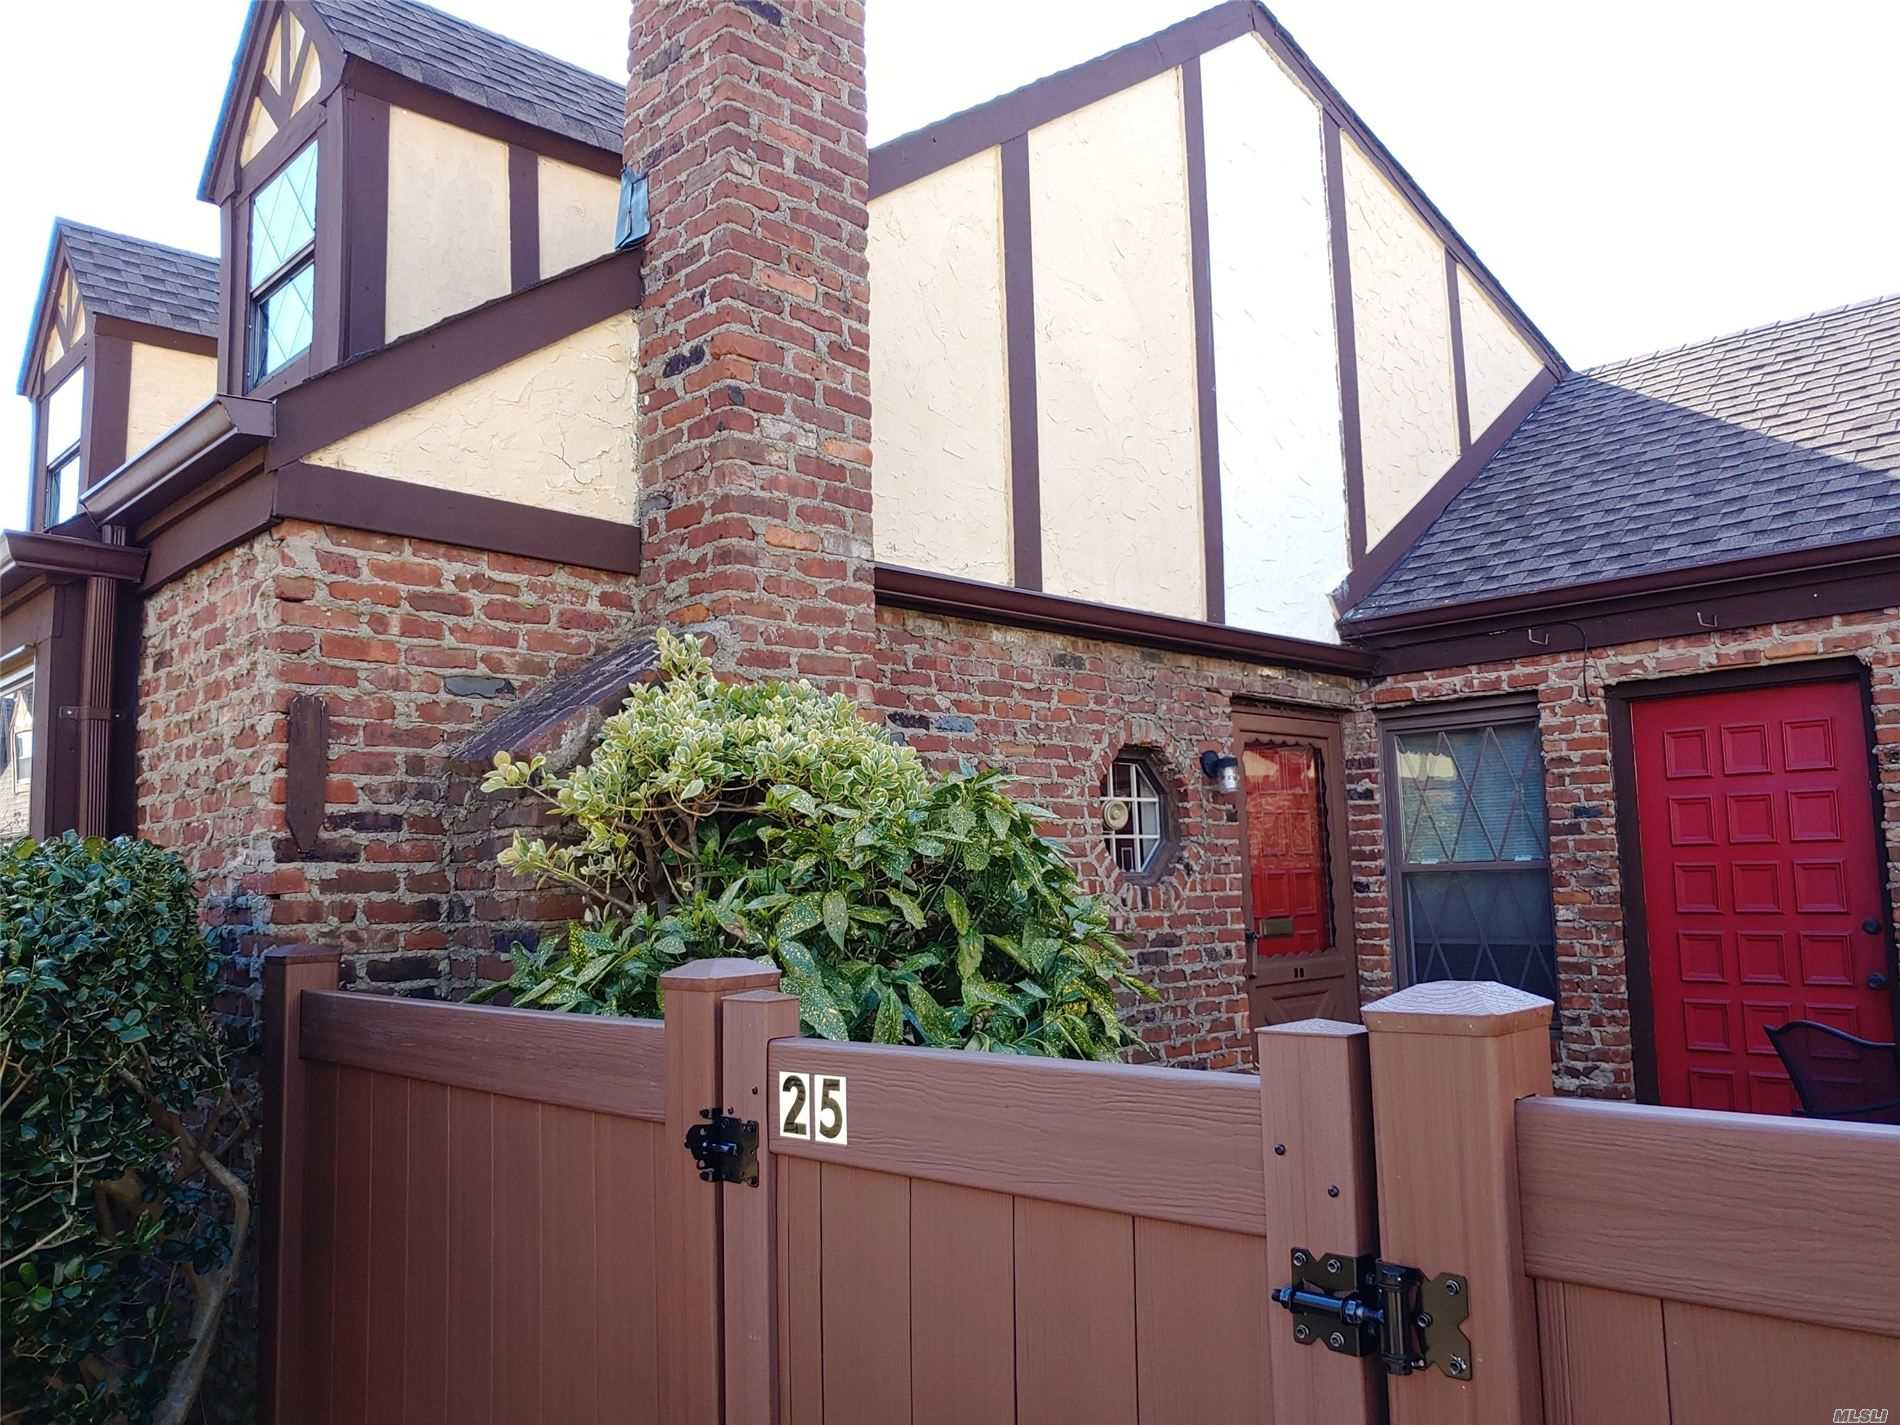 Property for sale at 25 Greenmeadow Ct # 212, Deer Park NY 11729, Deer Park,  New York 11729